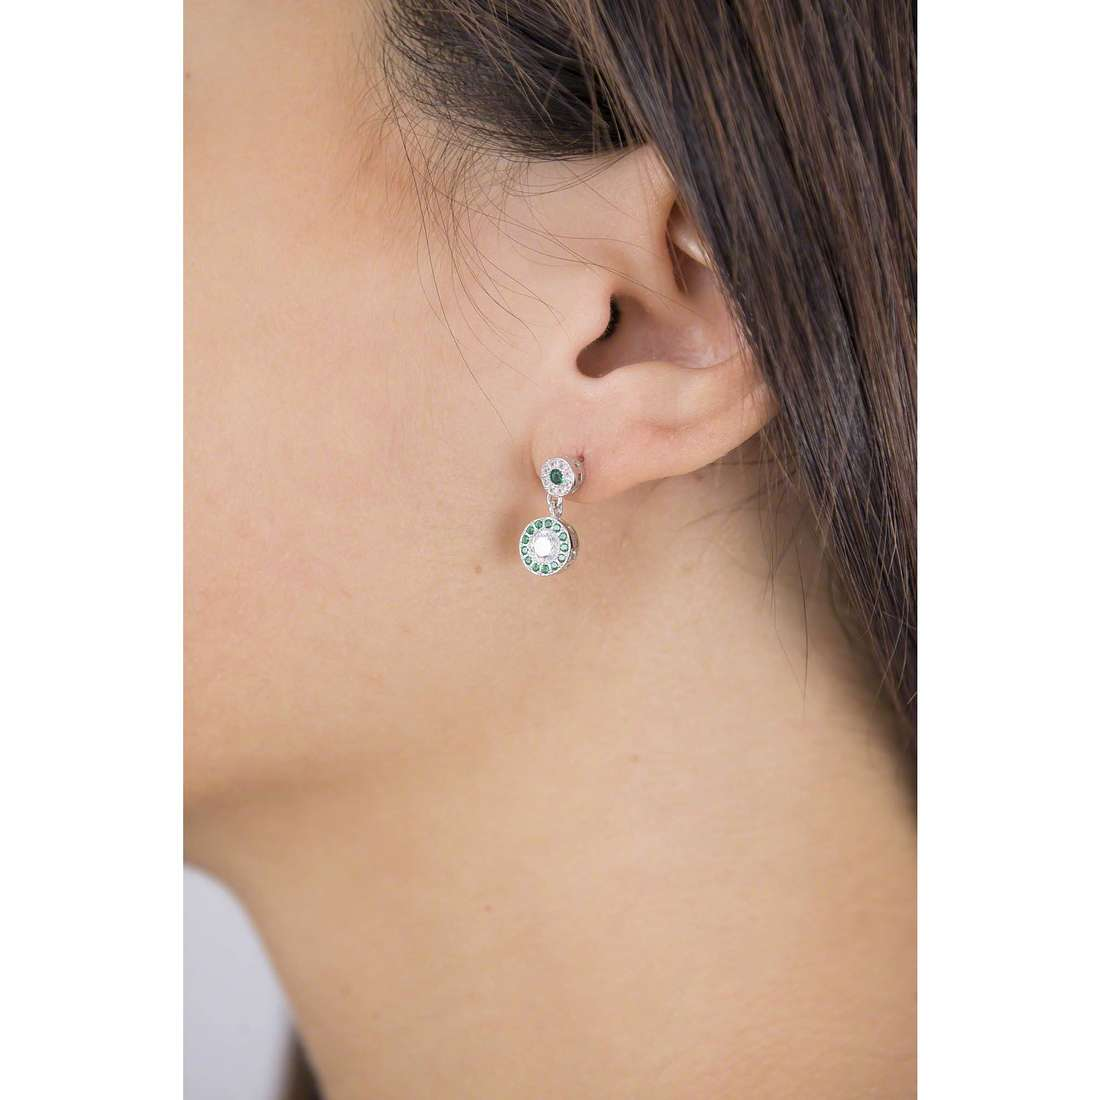 GioiaPura earrings woman GPSRSOR2303-VE indosso